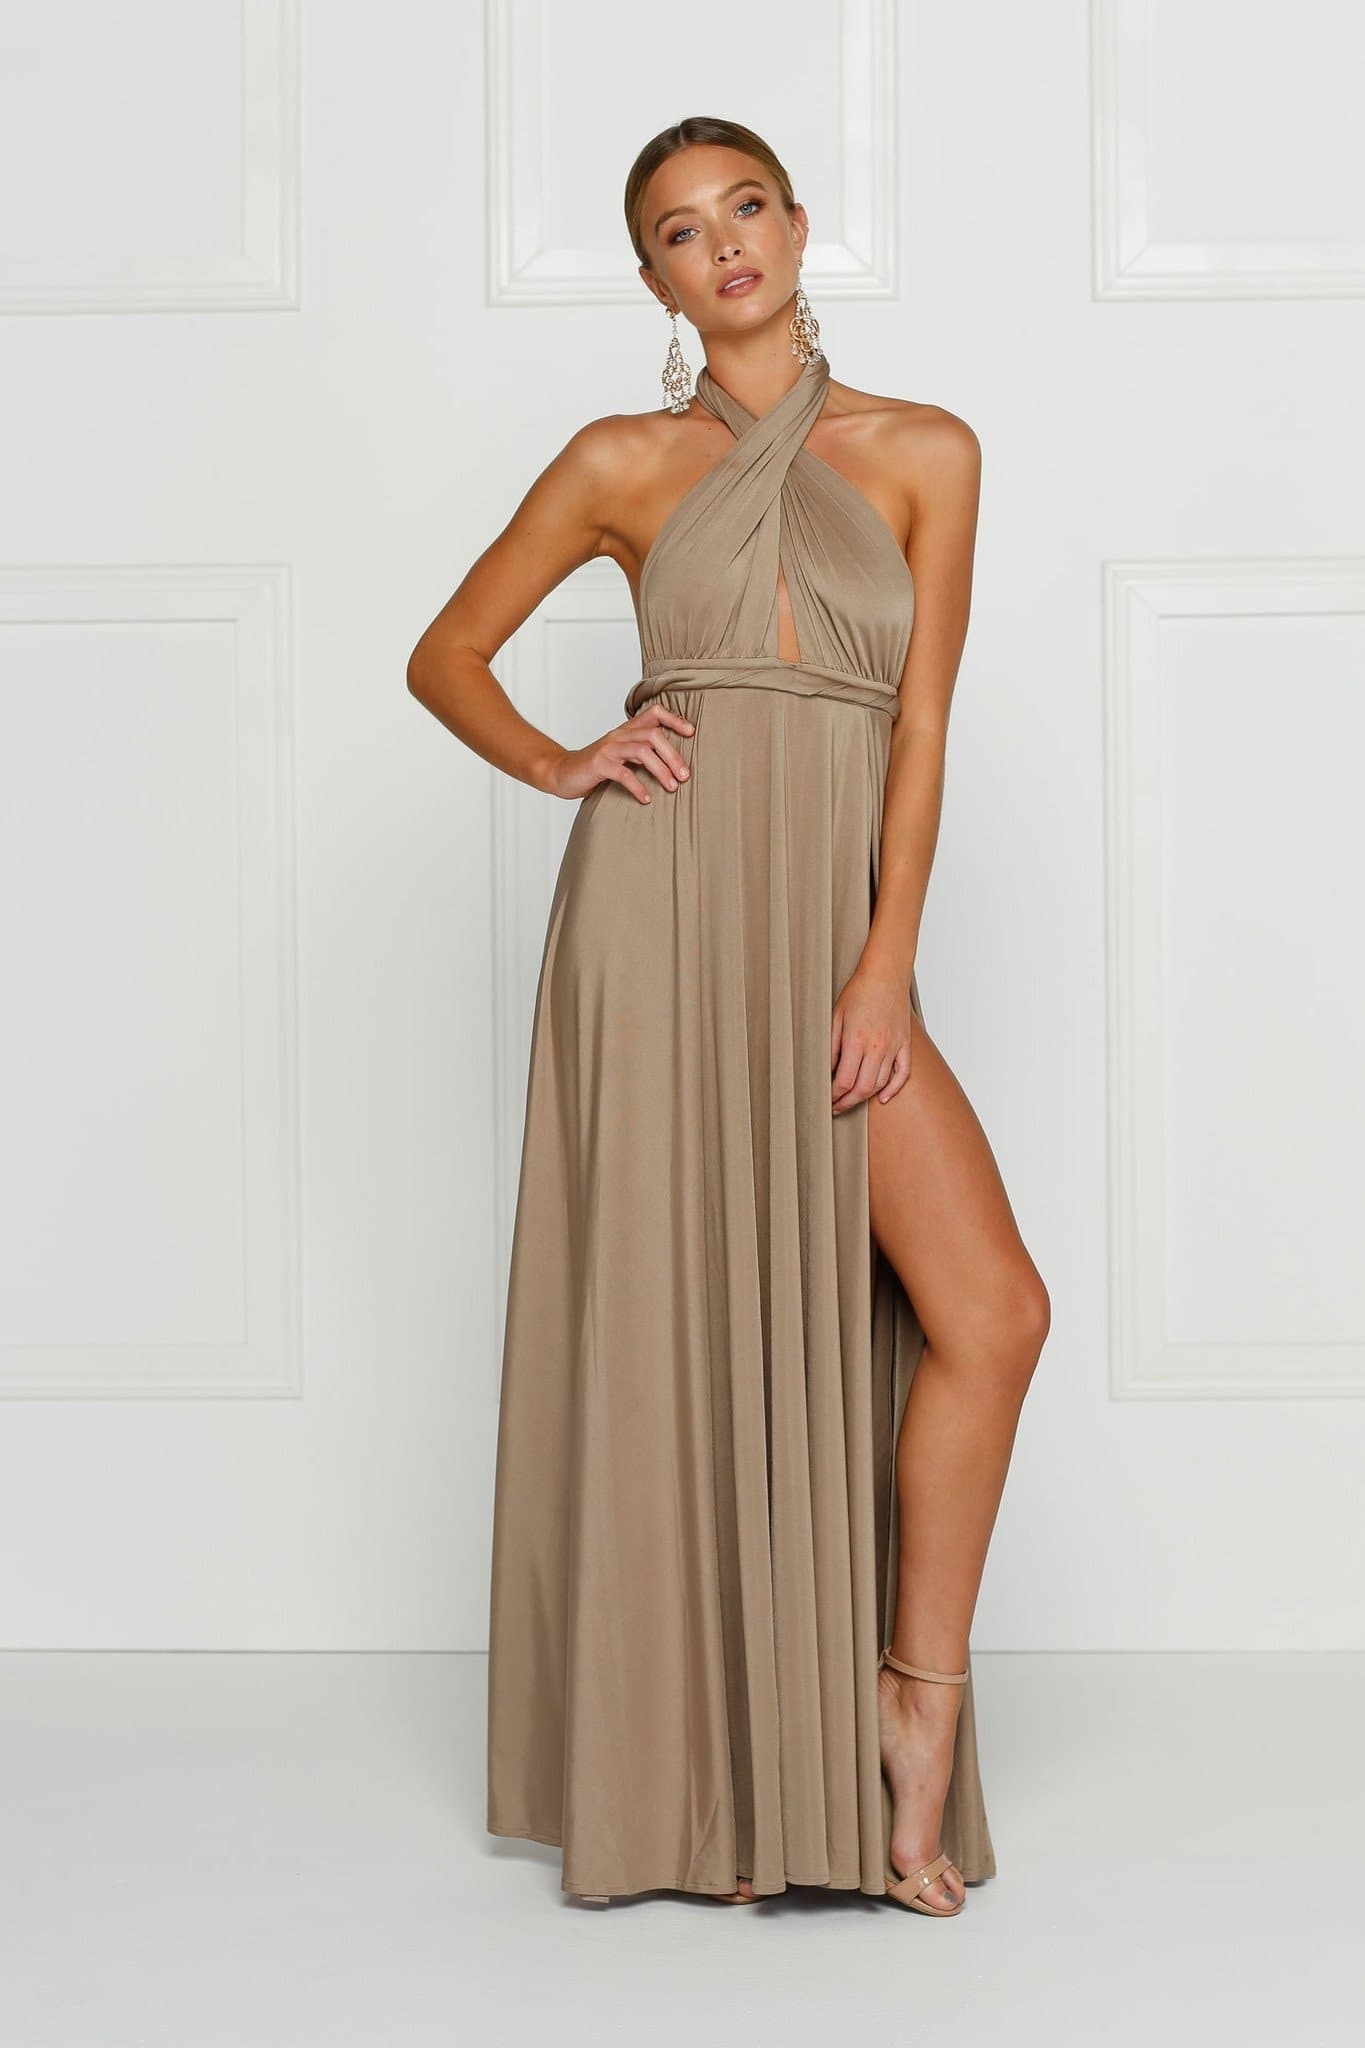 39e36faabd9 Catalina - Bronze Grecian Style Jersey Gown with Slit – A N Luxe Label